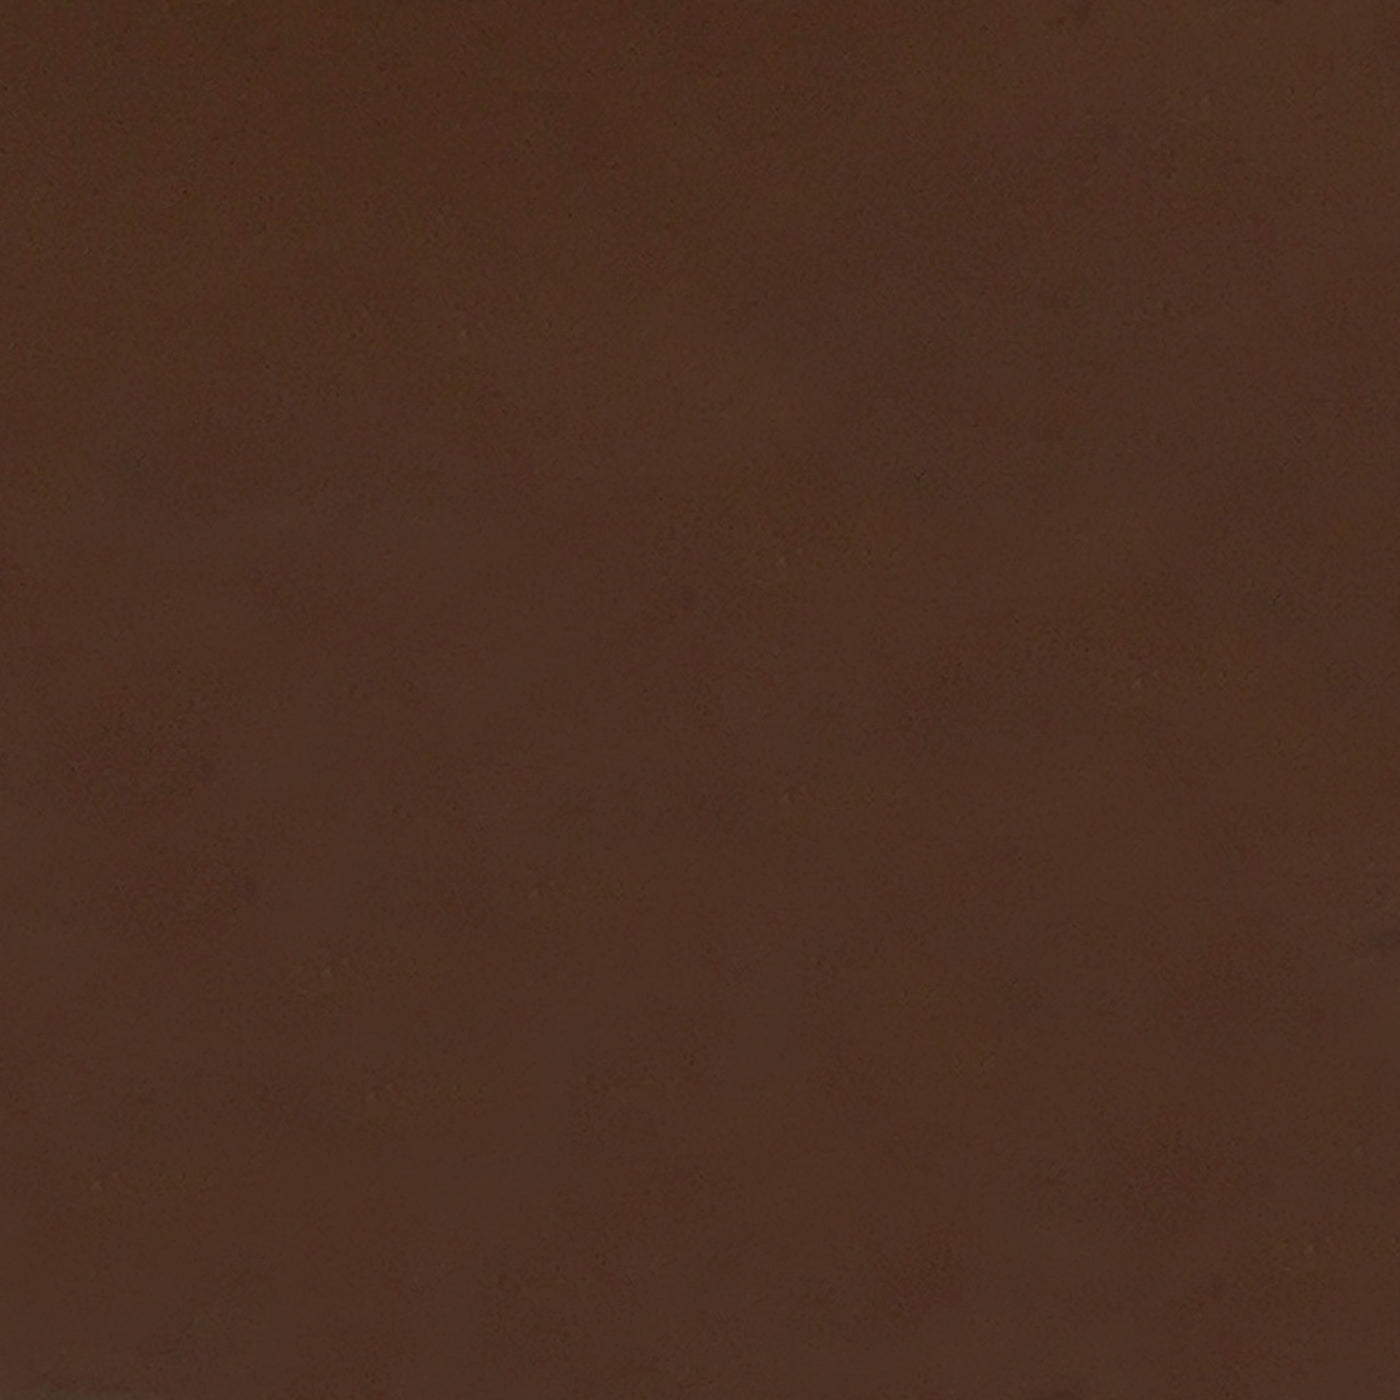 Chocolate Brown Mineral for Giani Countertop Paint Kits Step 2C